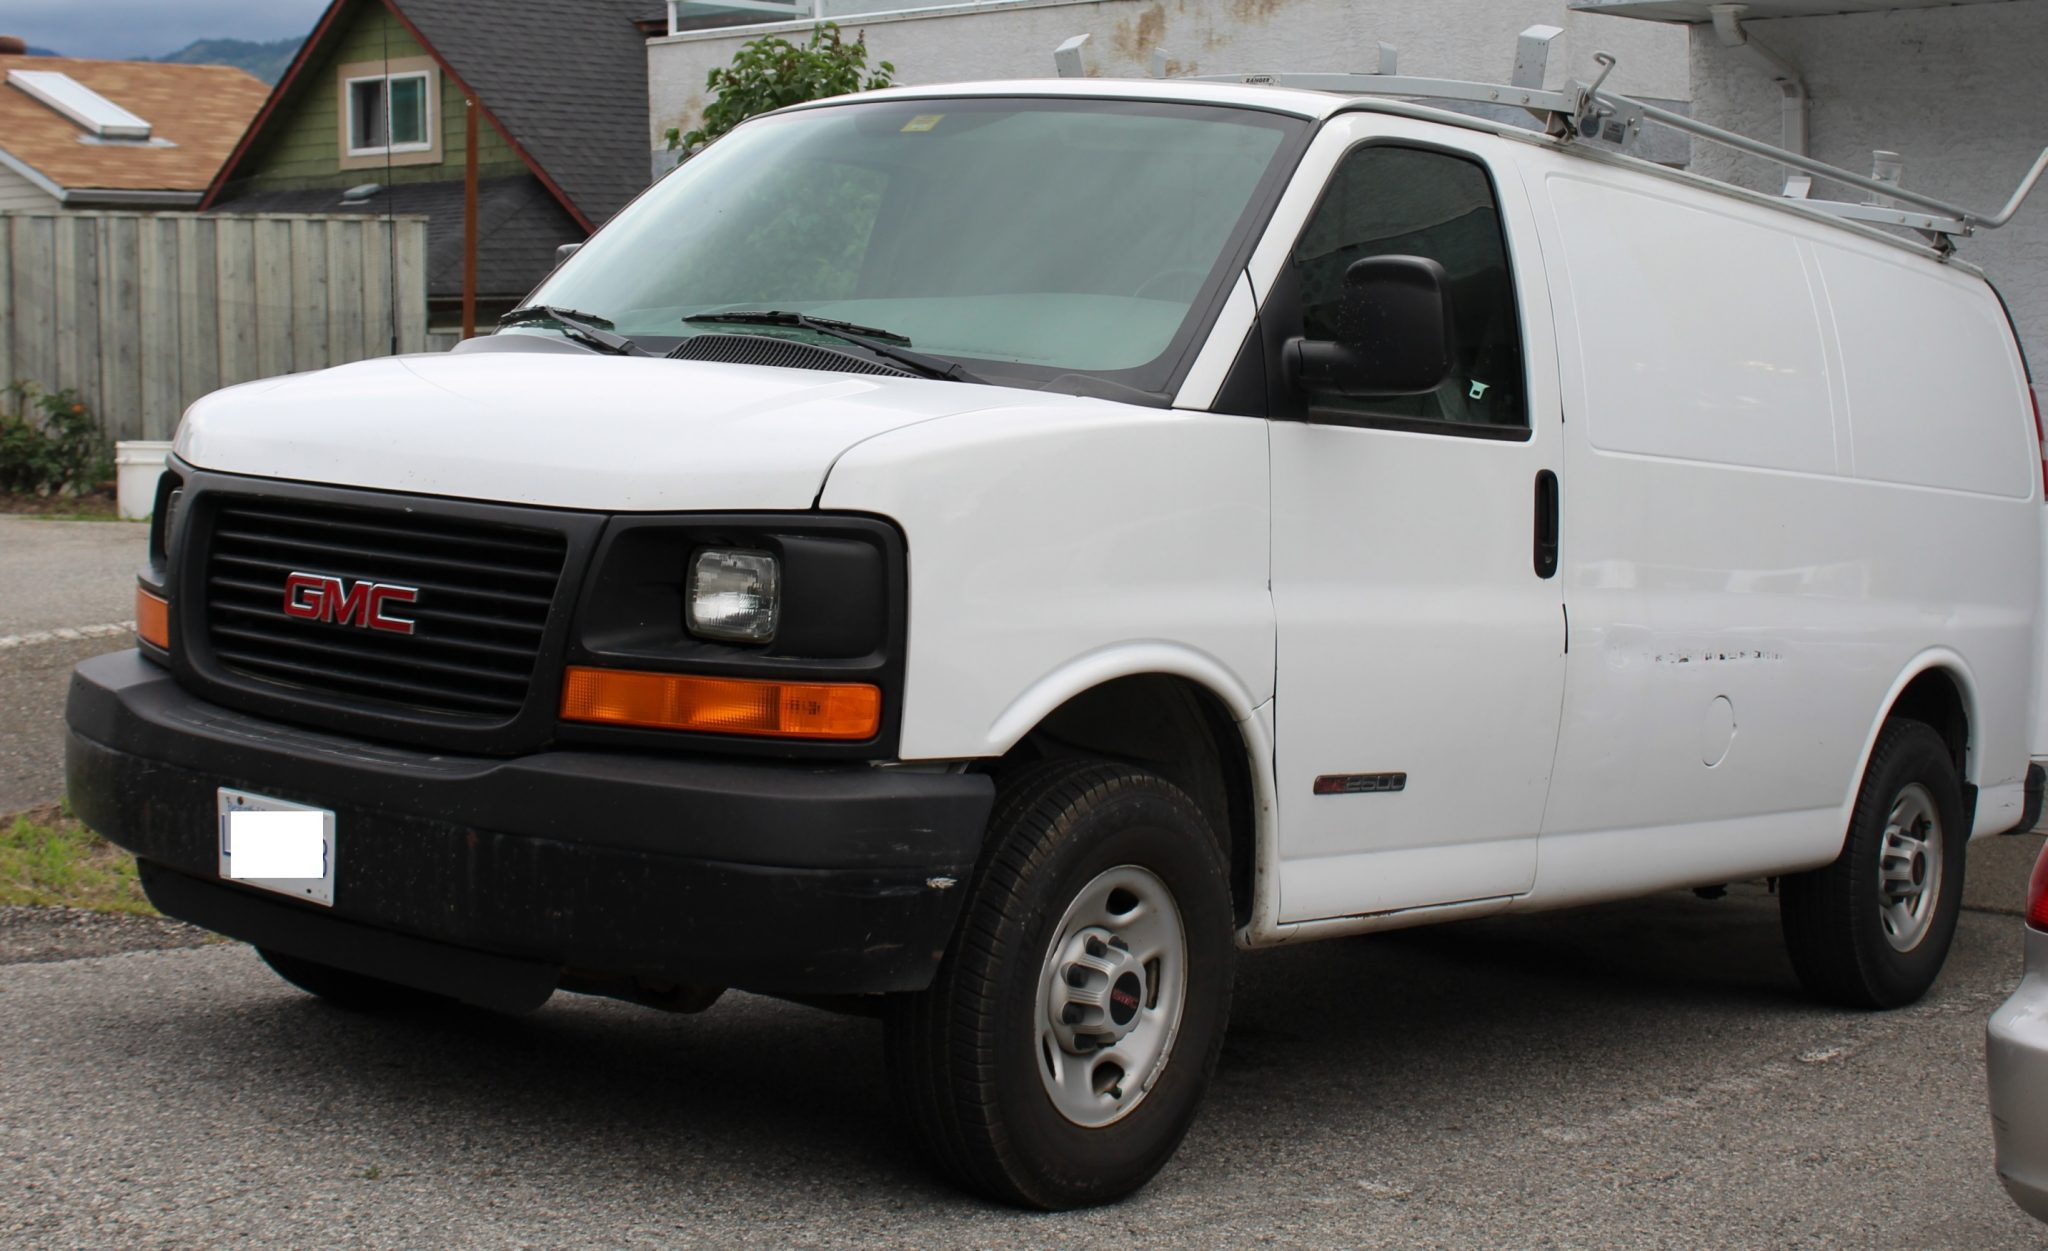 Gmc savana photo - 6